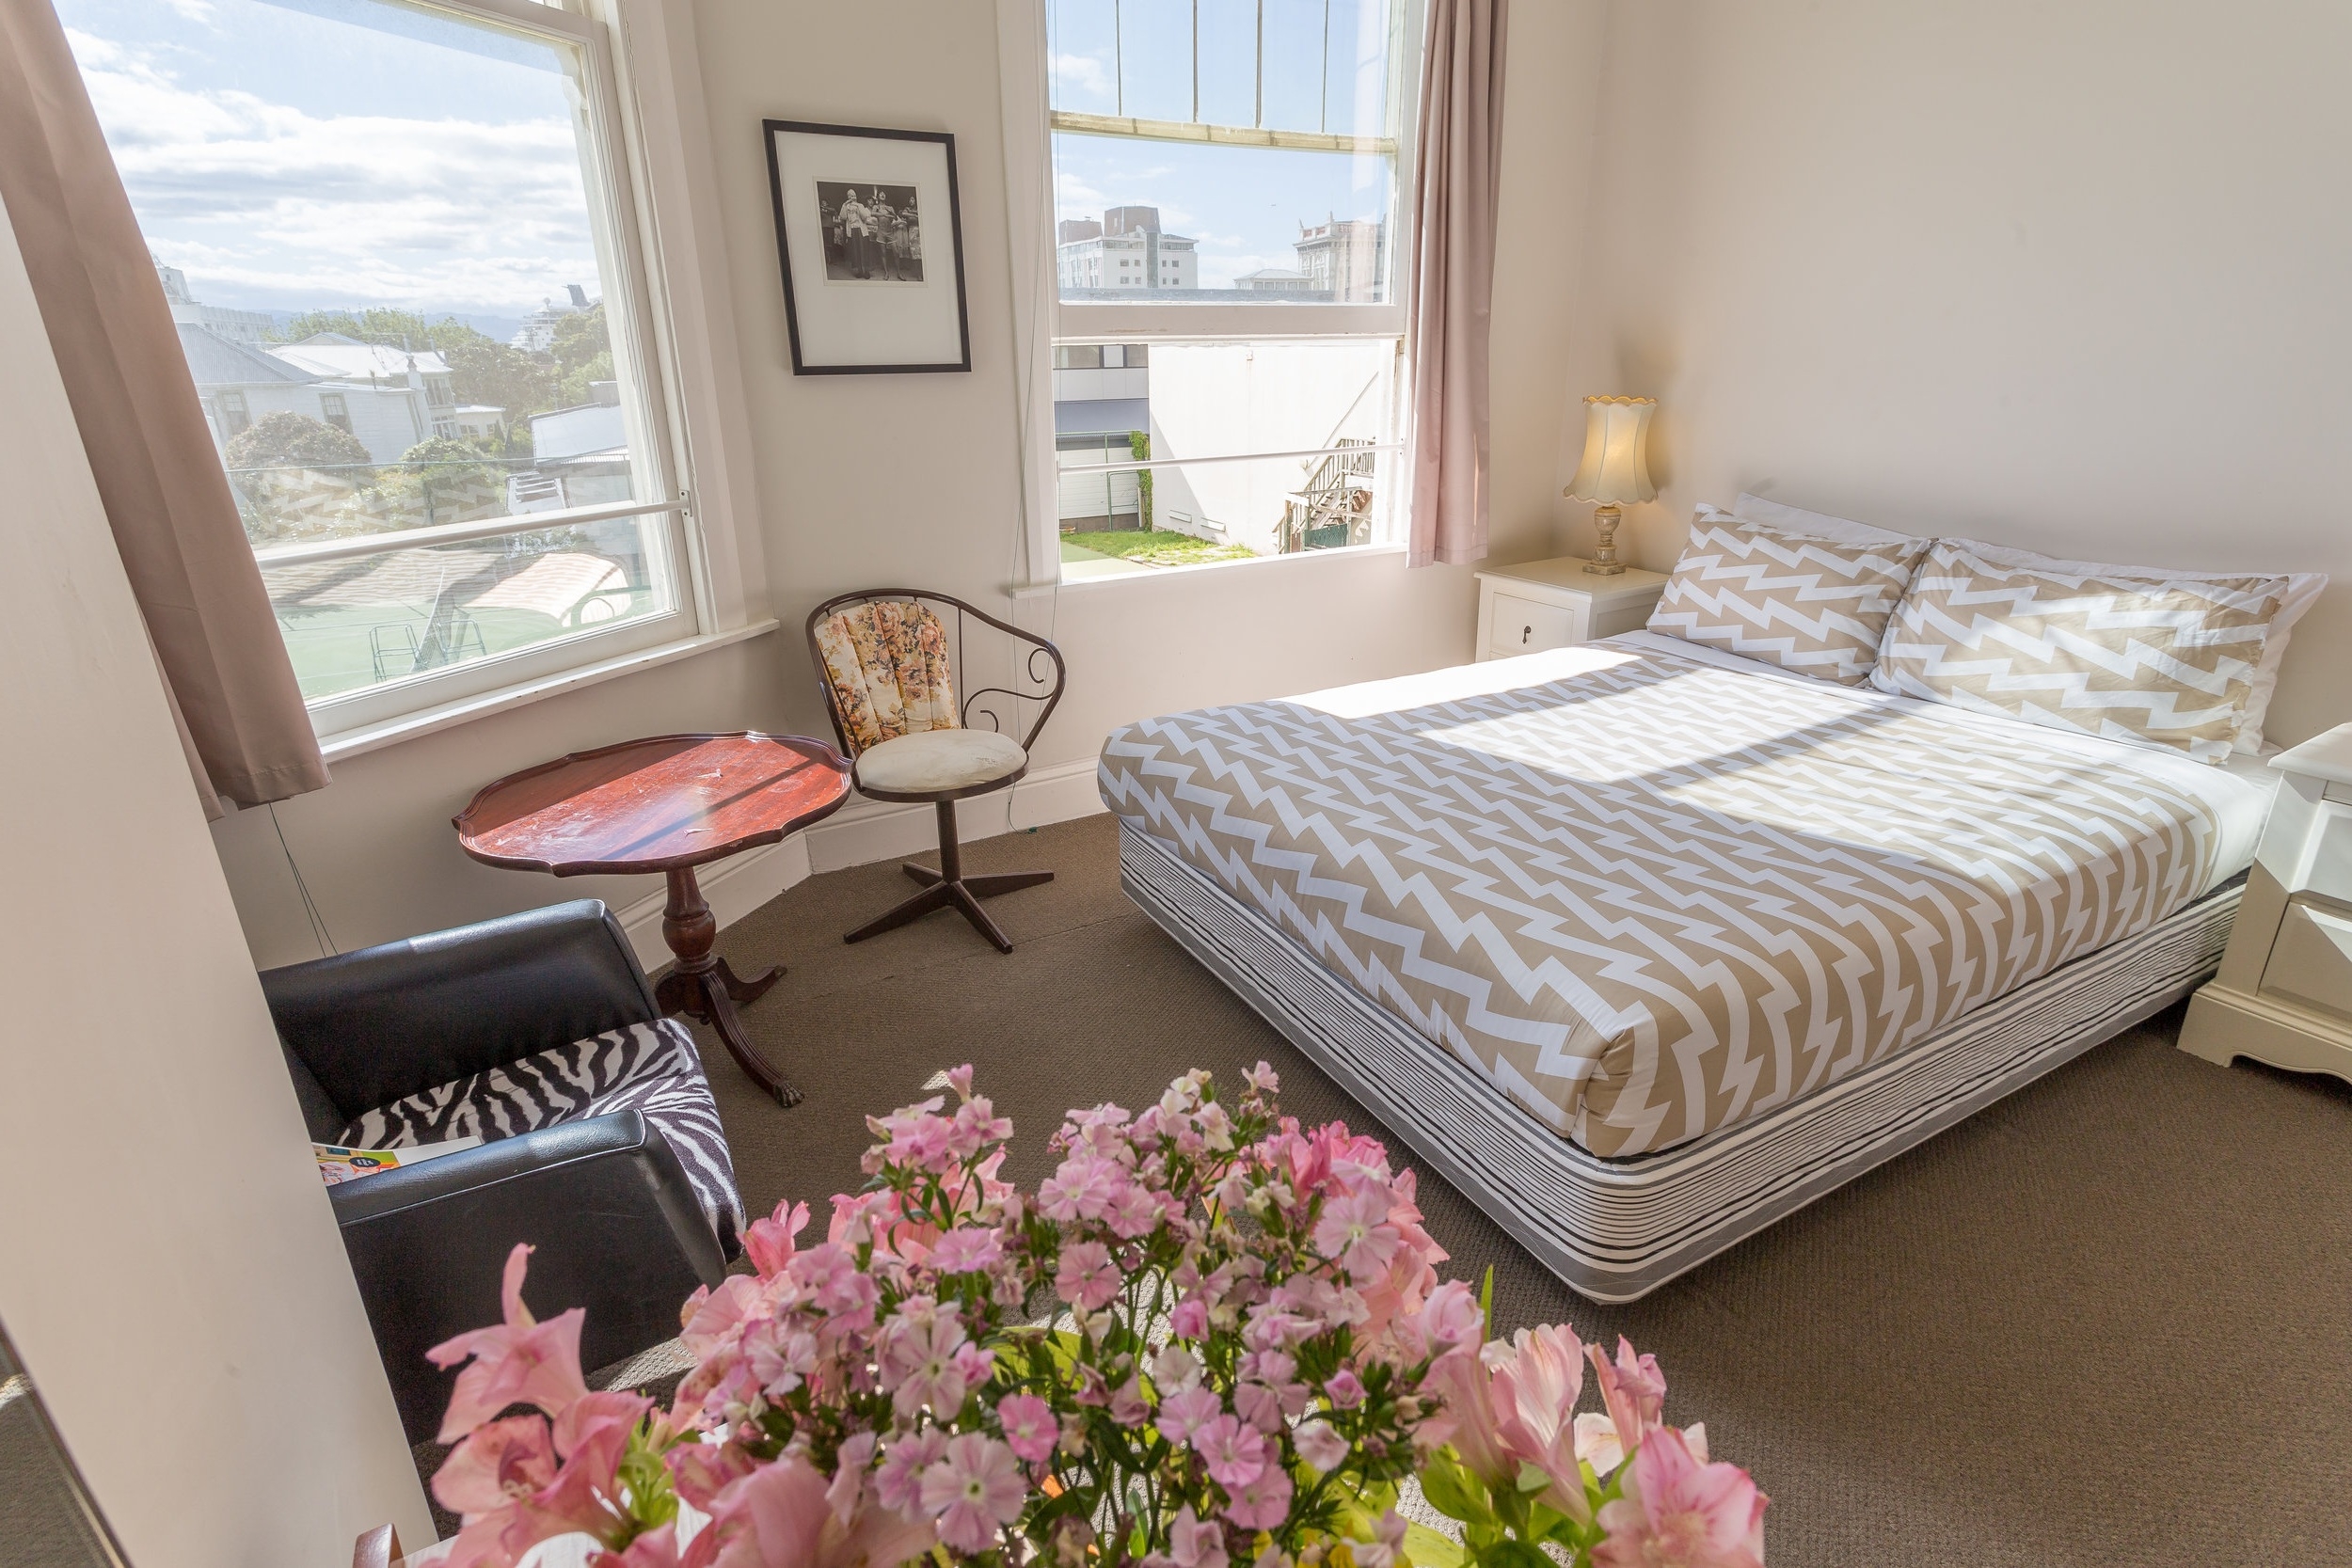 Ultra comfortable rooms to suit any type of budget… - Comfy queen sized beds in each private room and custom made timber bunks in all the dorms with luxurious mattresses and fresh linen bedding. All rooms are light and spacious, with views over Thorndon.